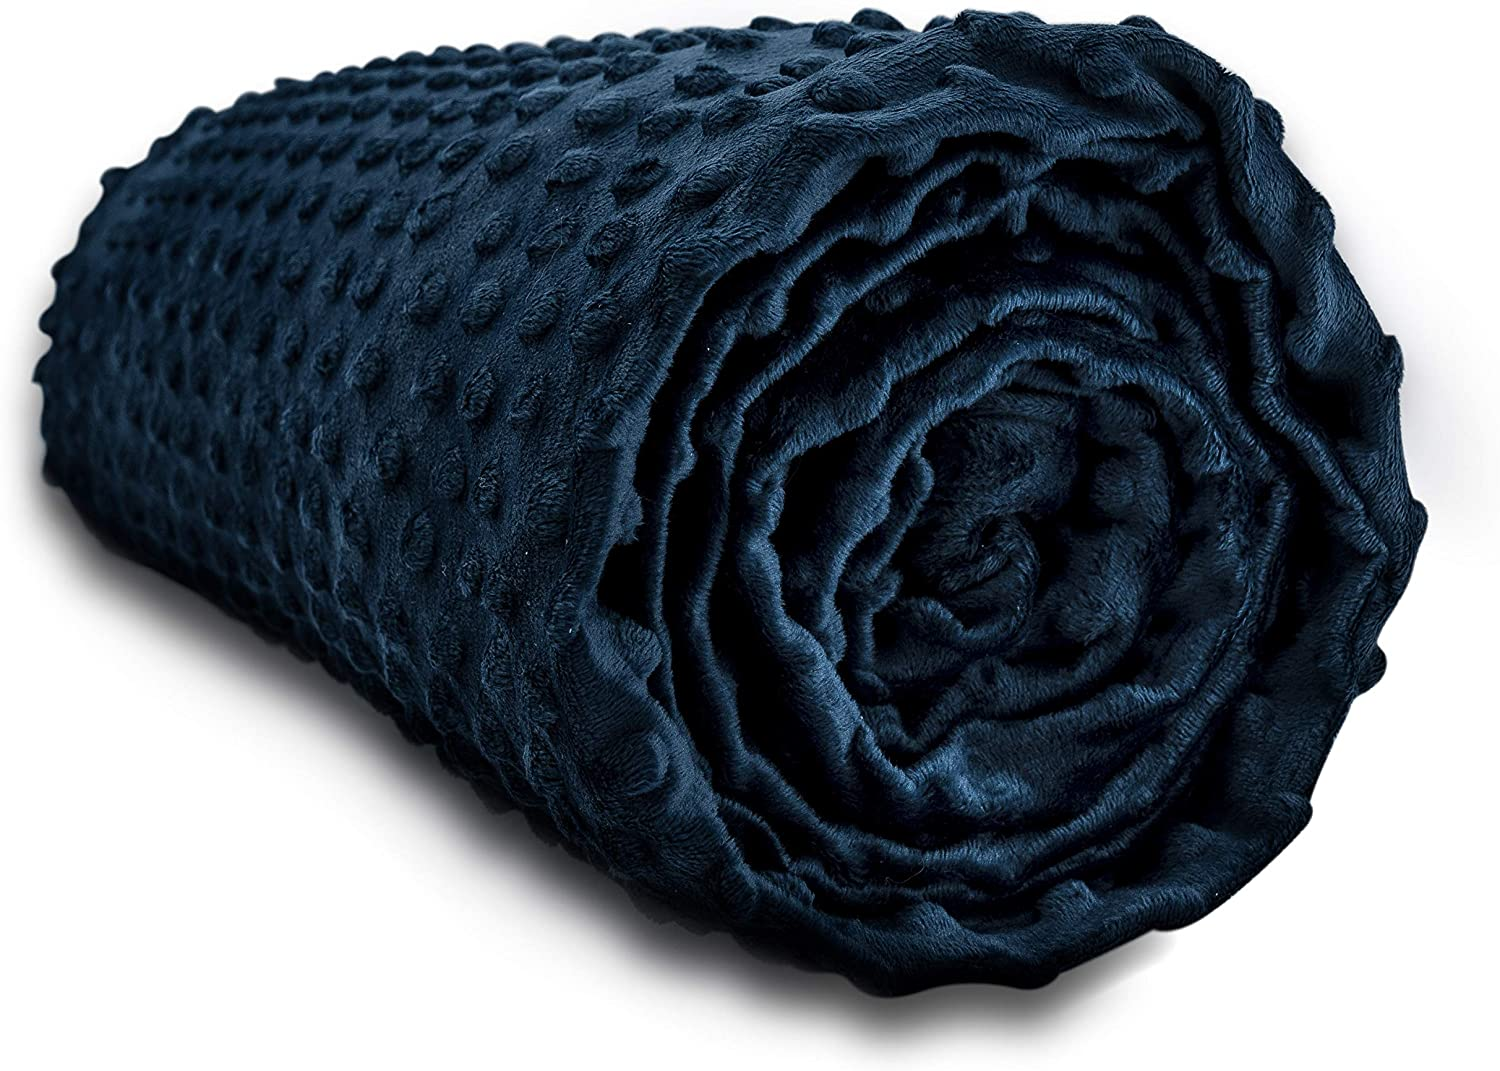 Cooshi Weighted Blanket Cover - 16 Ties - Soft and Machine Washable (Navy, 48 x 72)